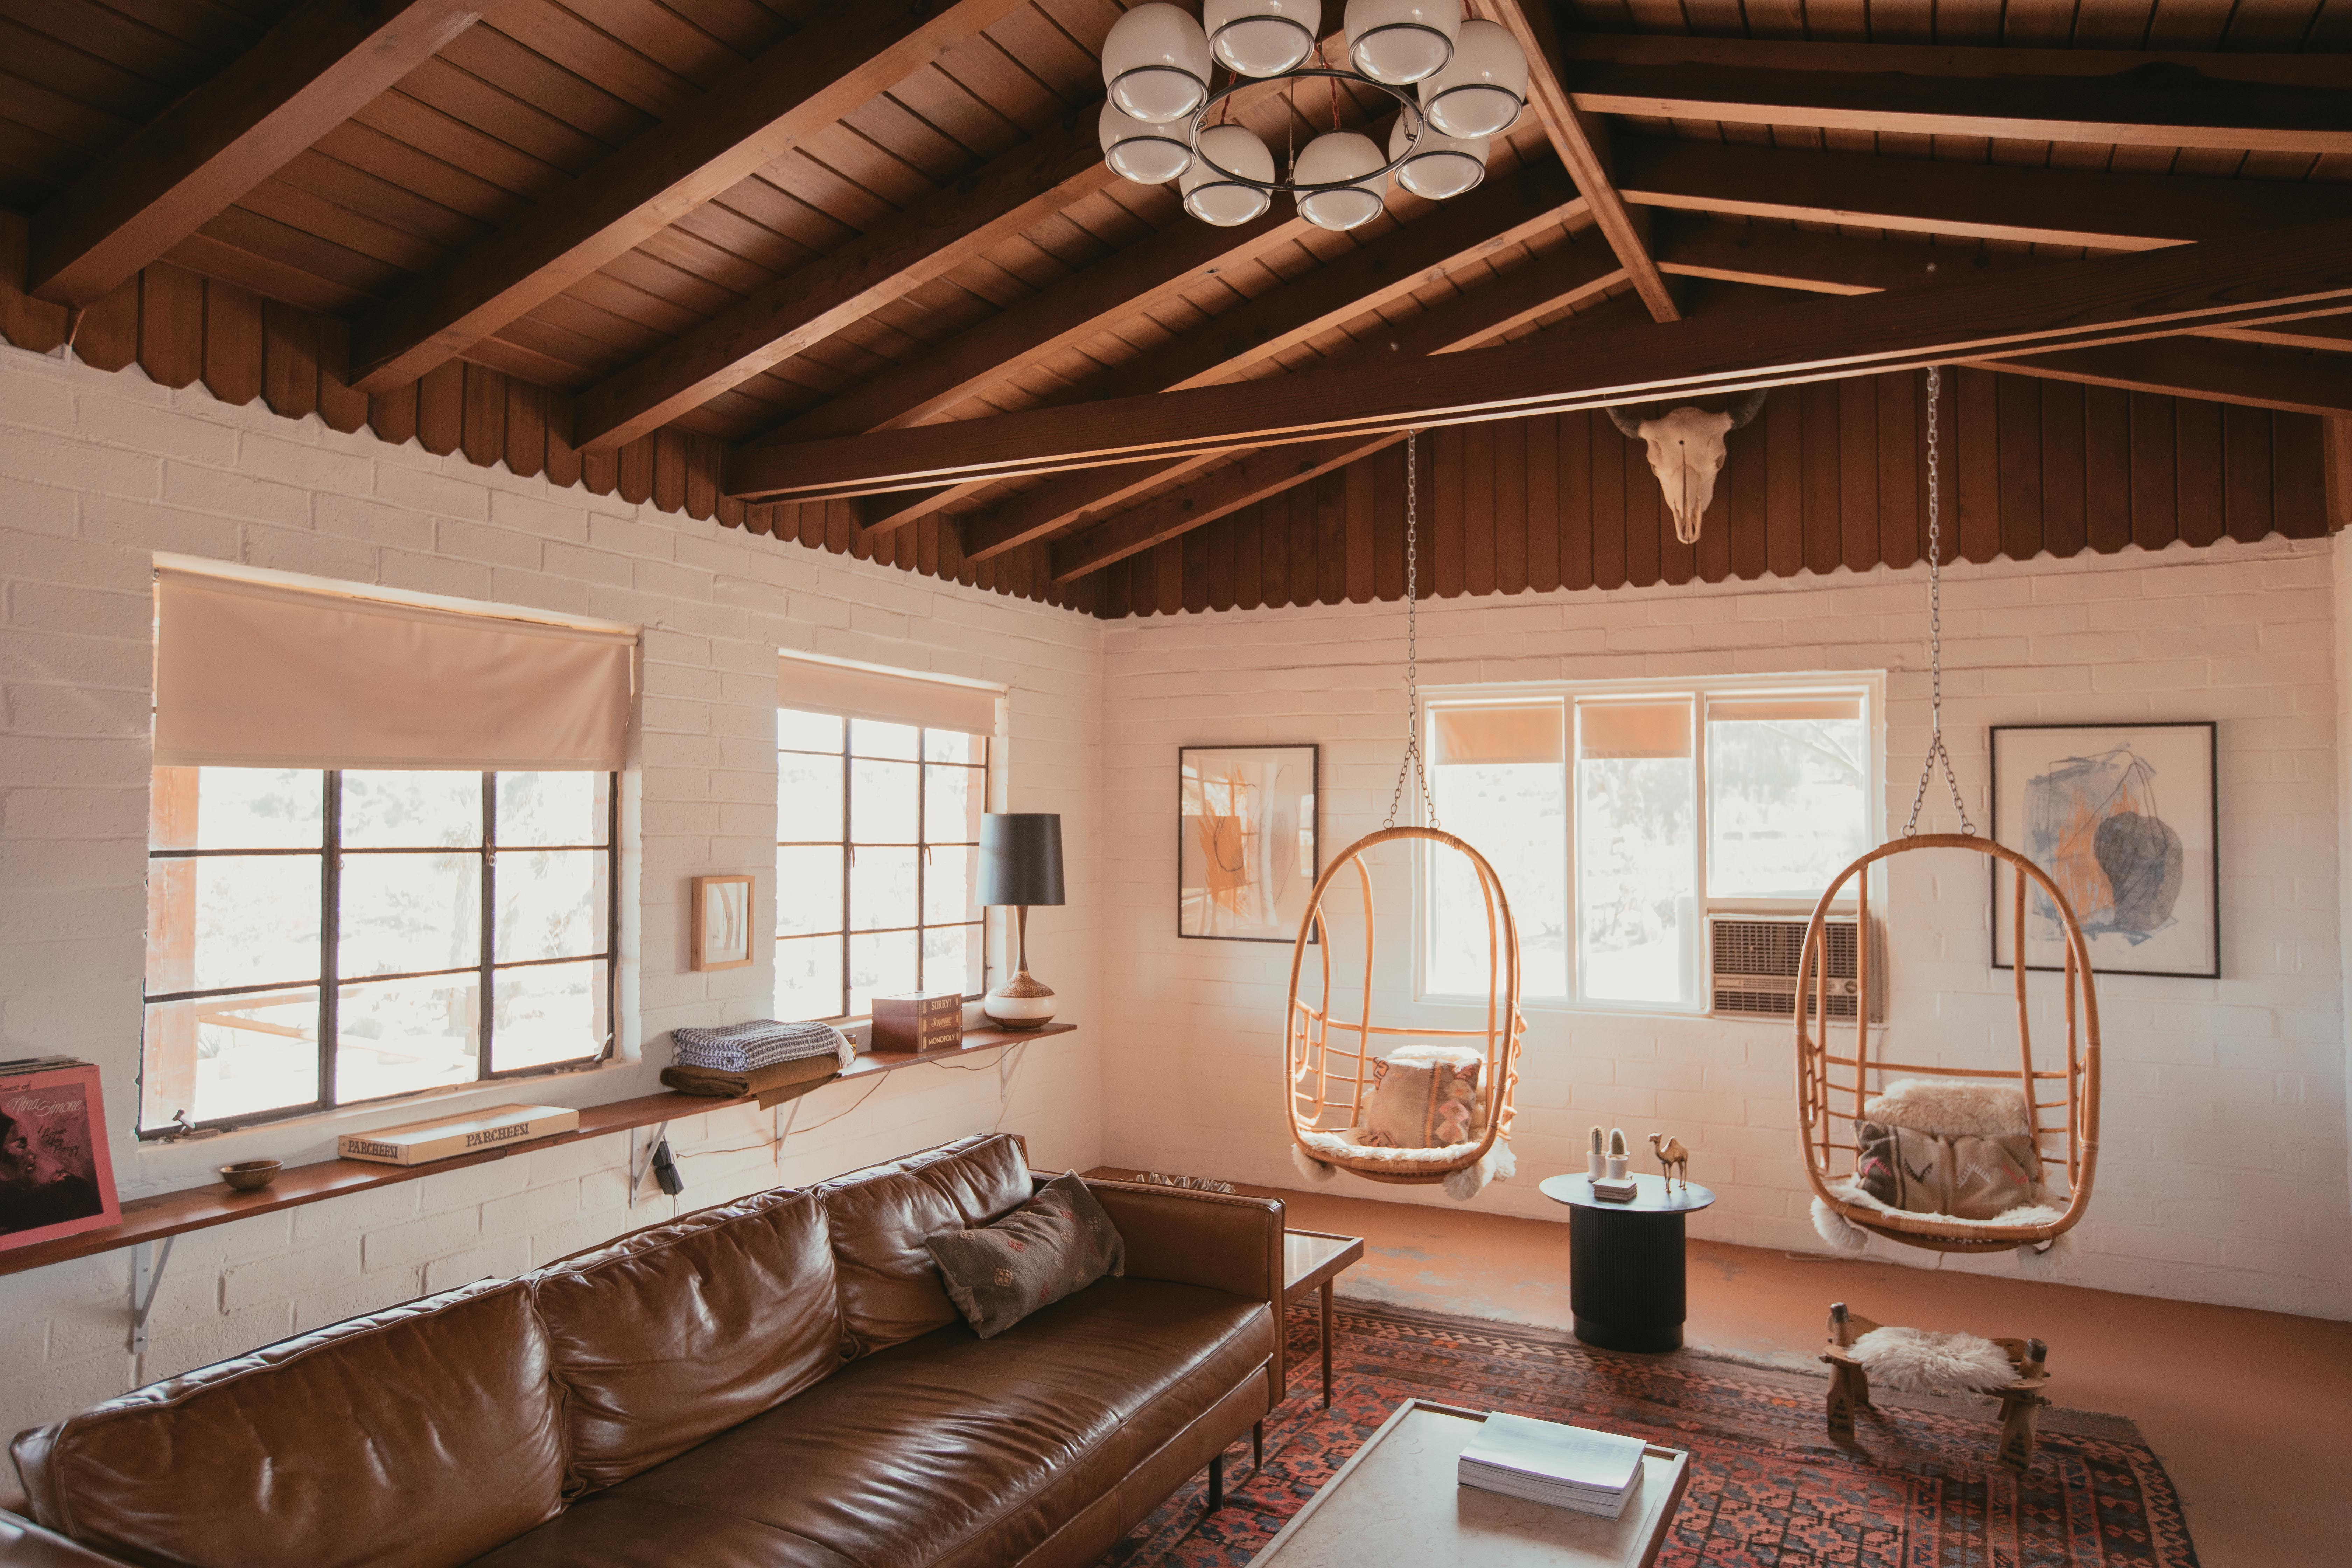 Airbnb Interiors Desert Inspiration In The Joshua Tree House The